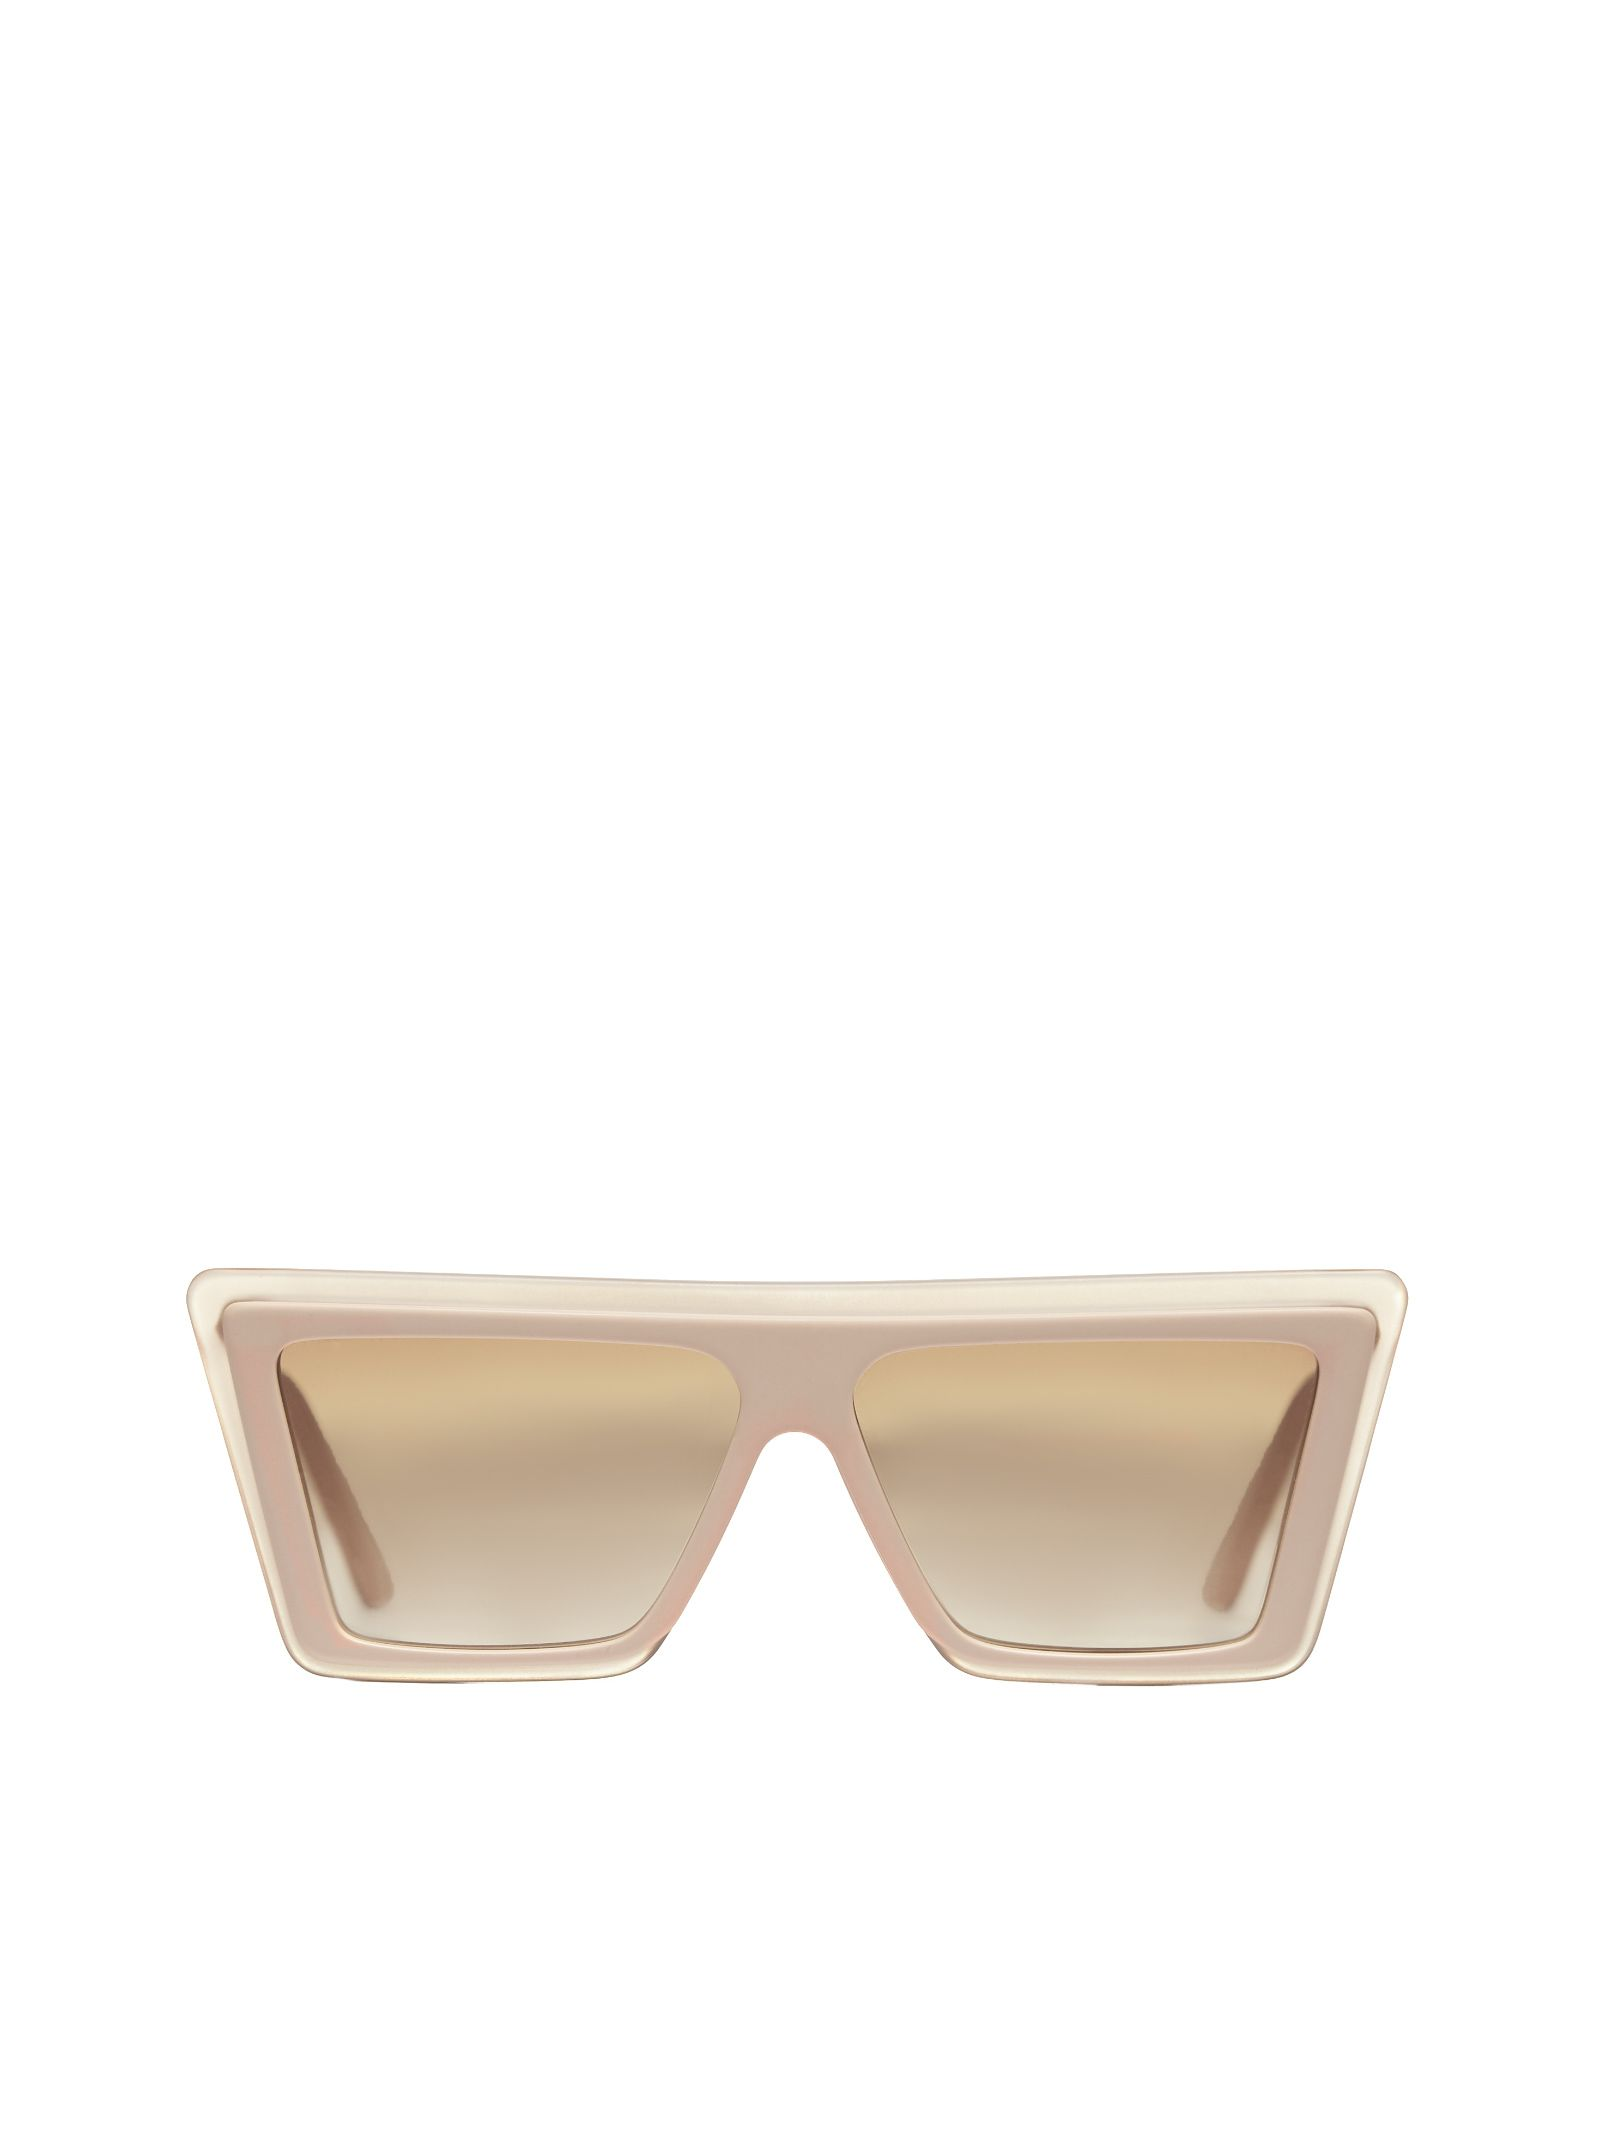 Christian Roth Tinted Sunglasses